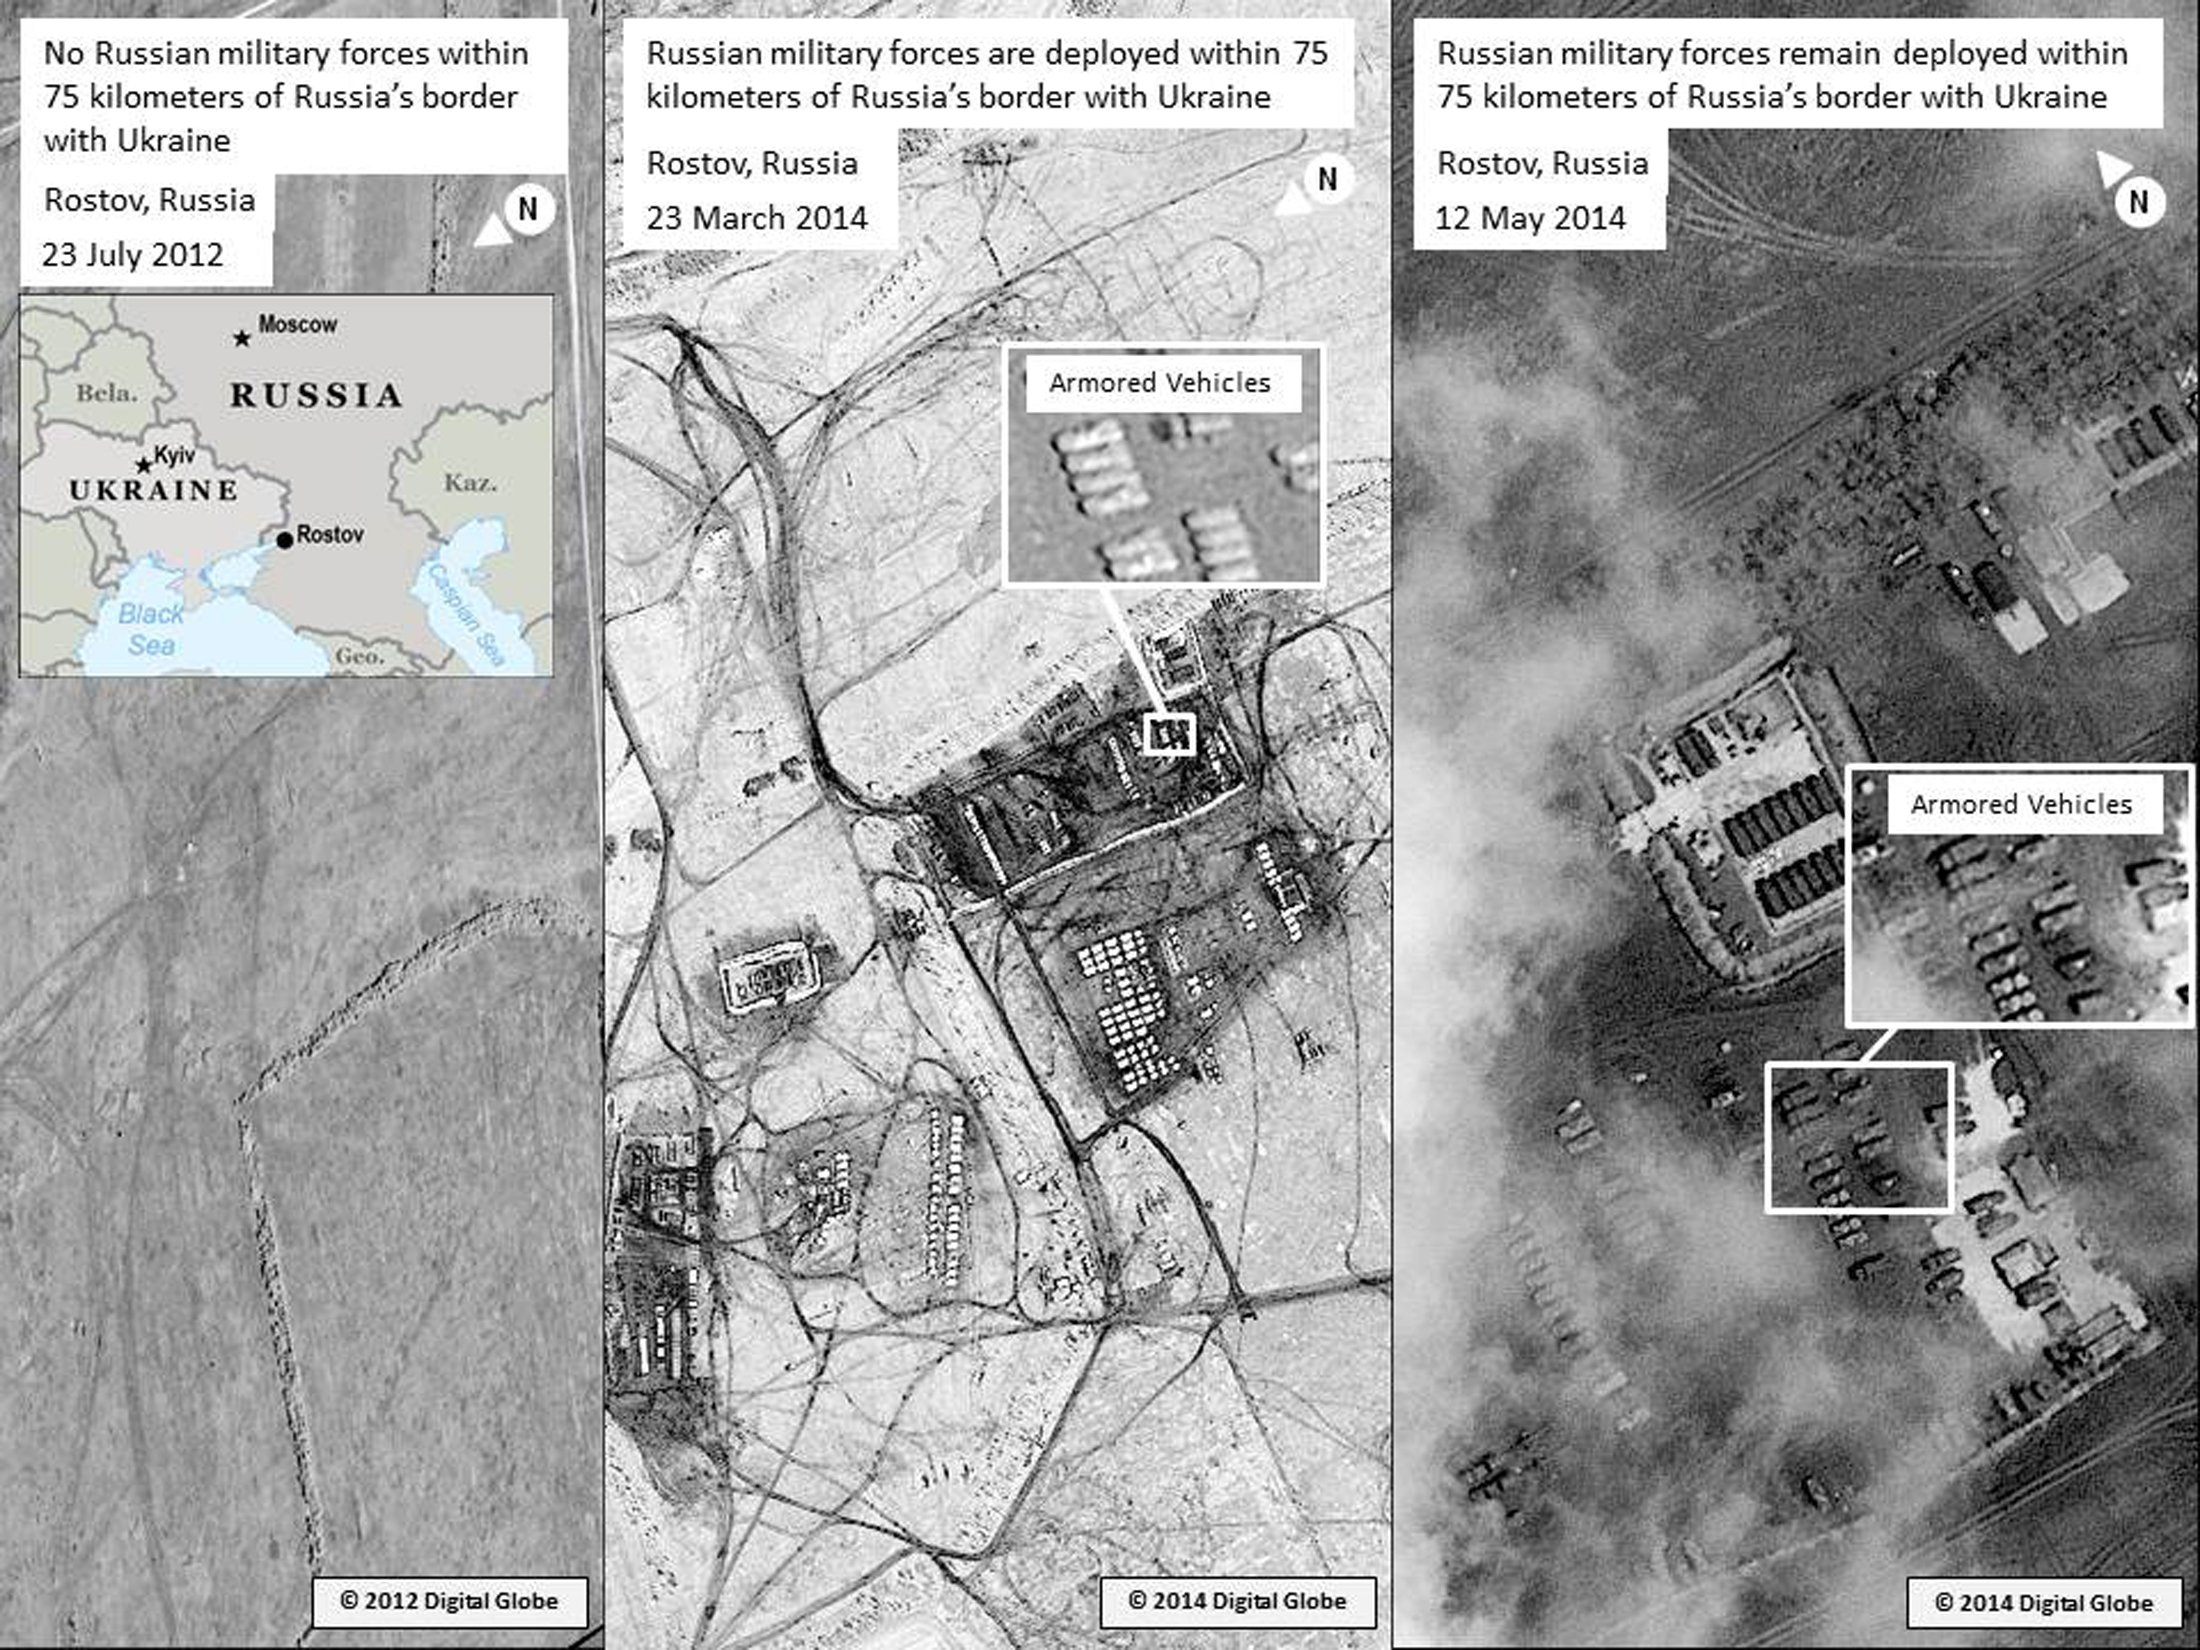 Satellite images said to show Russian troops gathering near the Ukrainian border is seen in this handout released by the U.S. mission to NATO May 13, 2014. The U.S. government released new satellite pictures on Tuesday which it said showed Russian forces were still near the Ukrainian border in recent days, contradicting Russian assertions they had been withdrawn. (REUTERS/Digital Globe via U.S. mission to NATO/Handout via Reuters)